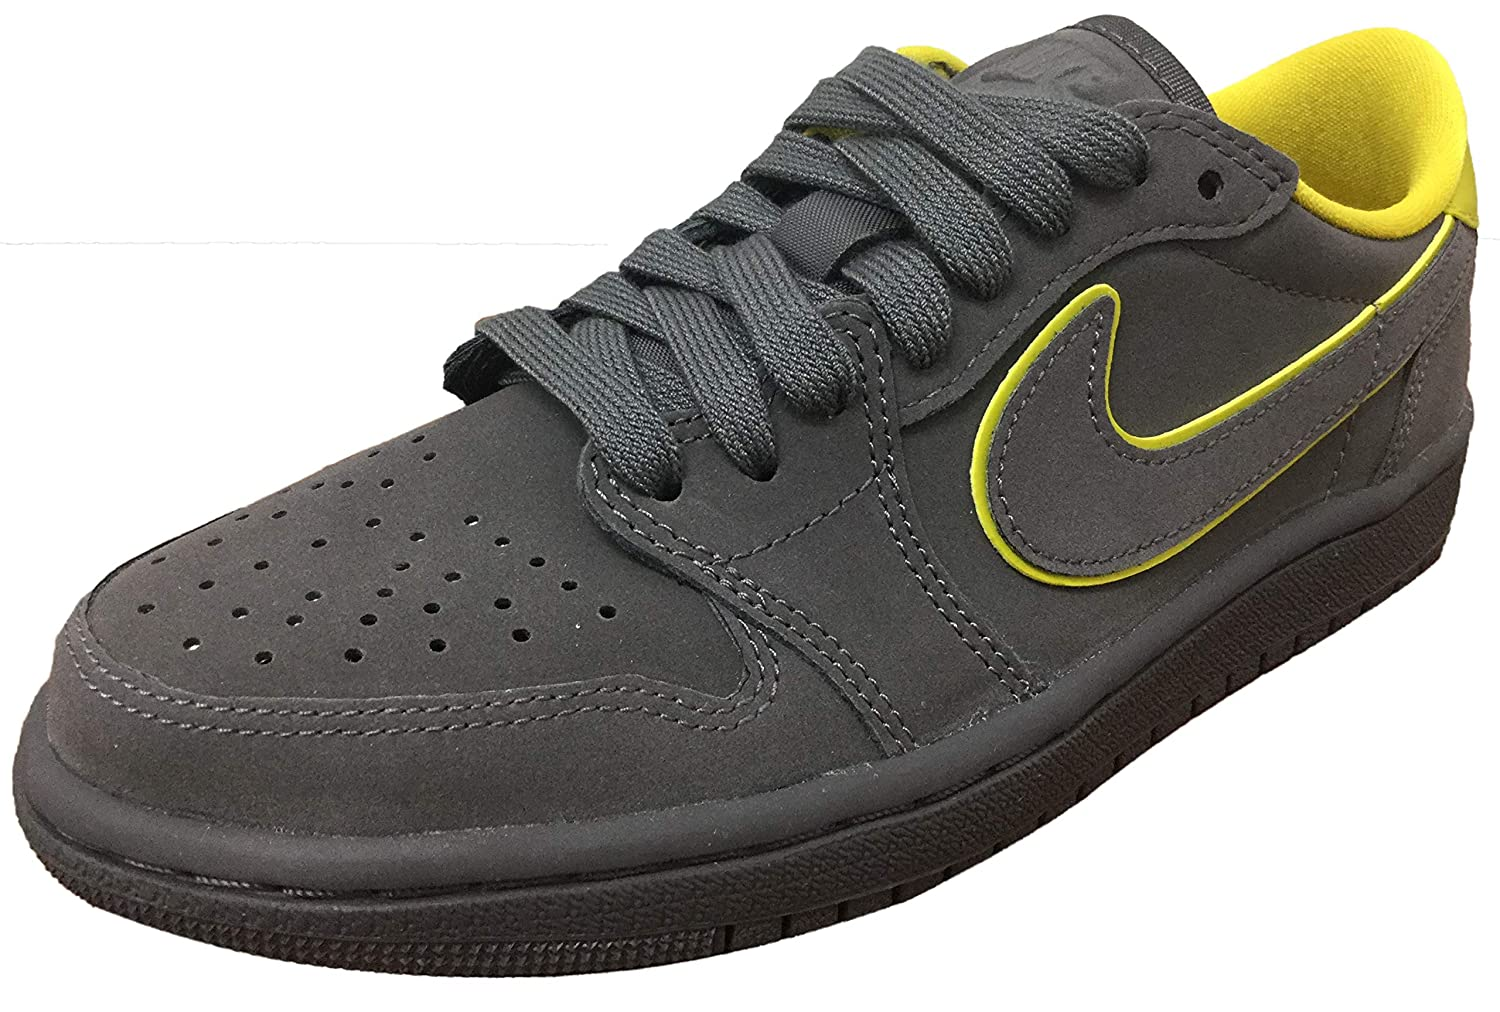 new products 2ab57 9d547 Amazon.com | Air Jordan 1 Retro Low OG Thunder Grey/Bright ...